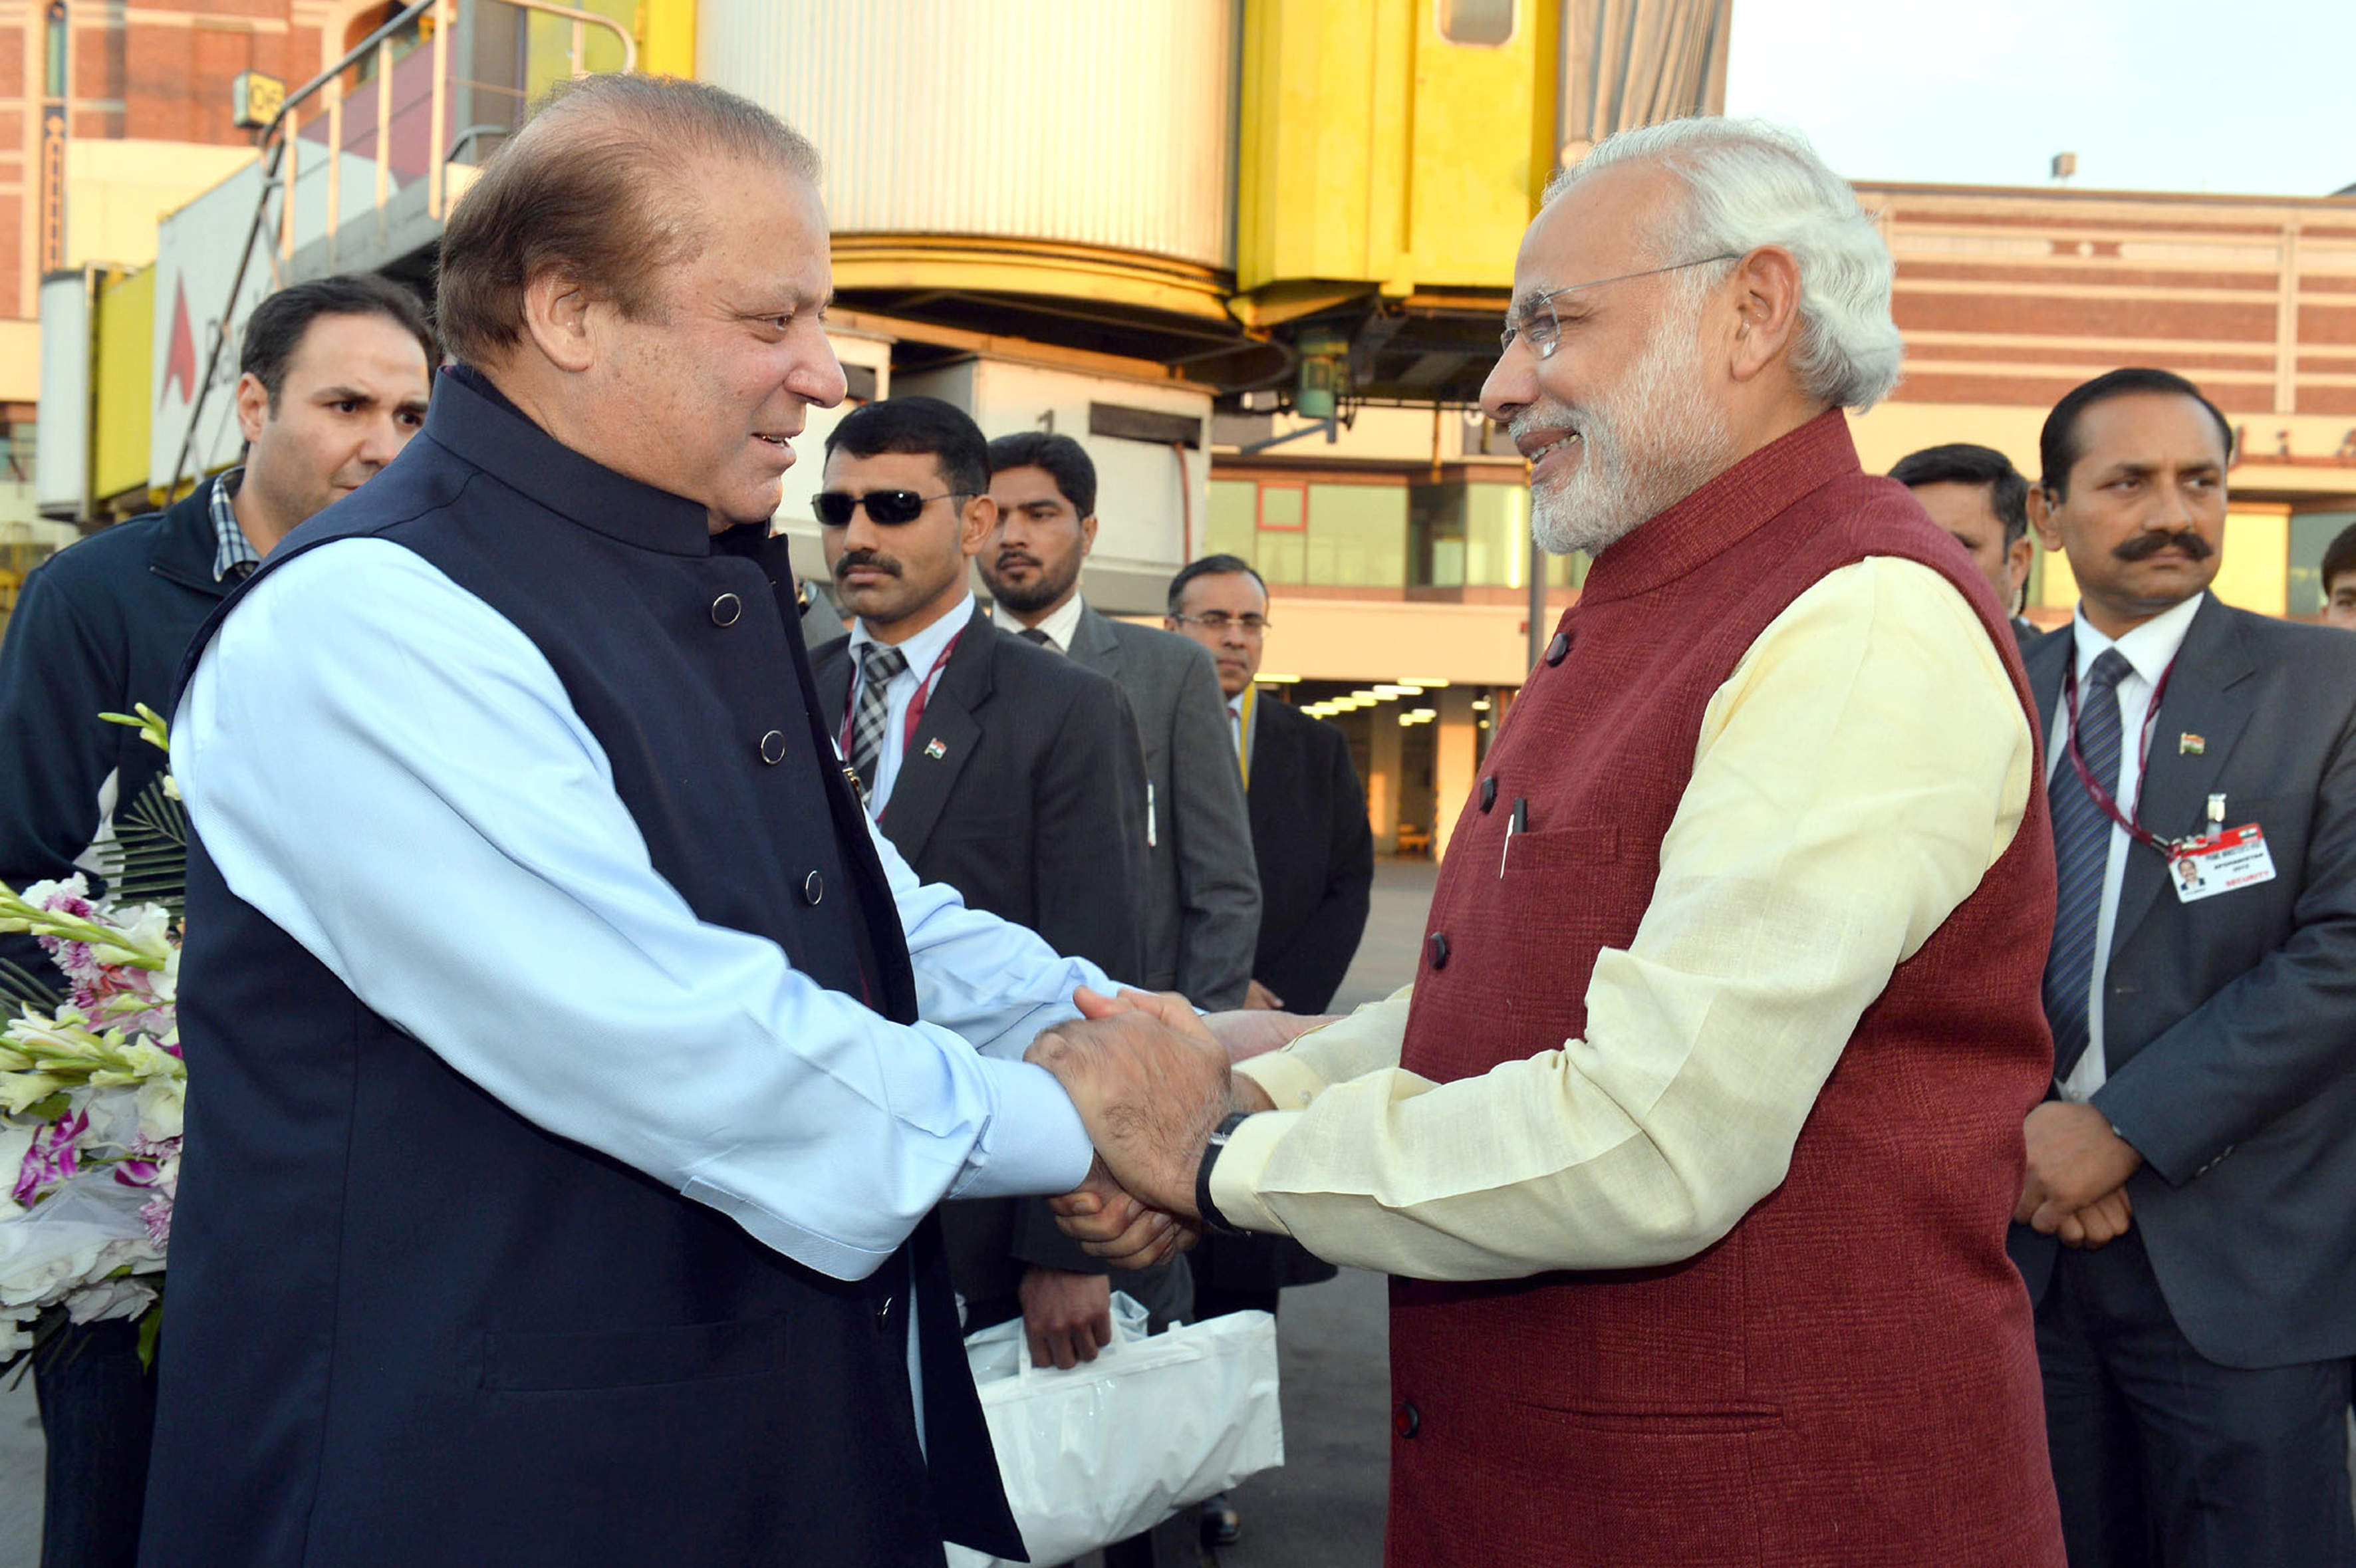 Narendra Modi has made attempts to reach out to Nawaz Sharif in the past. Source: EPA